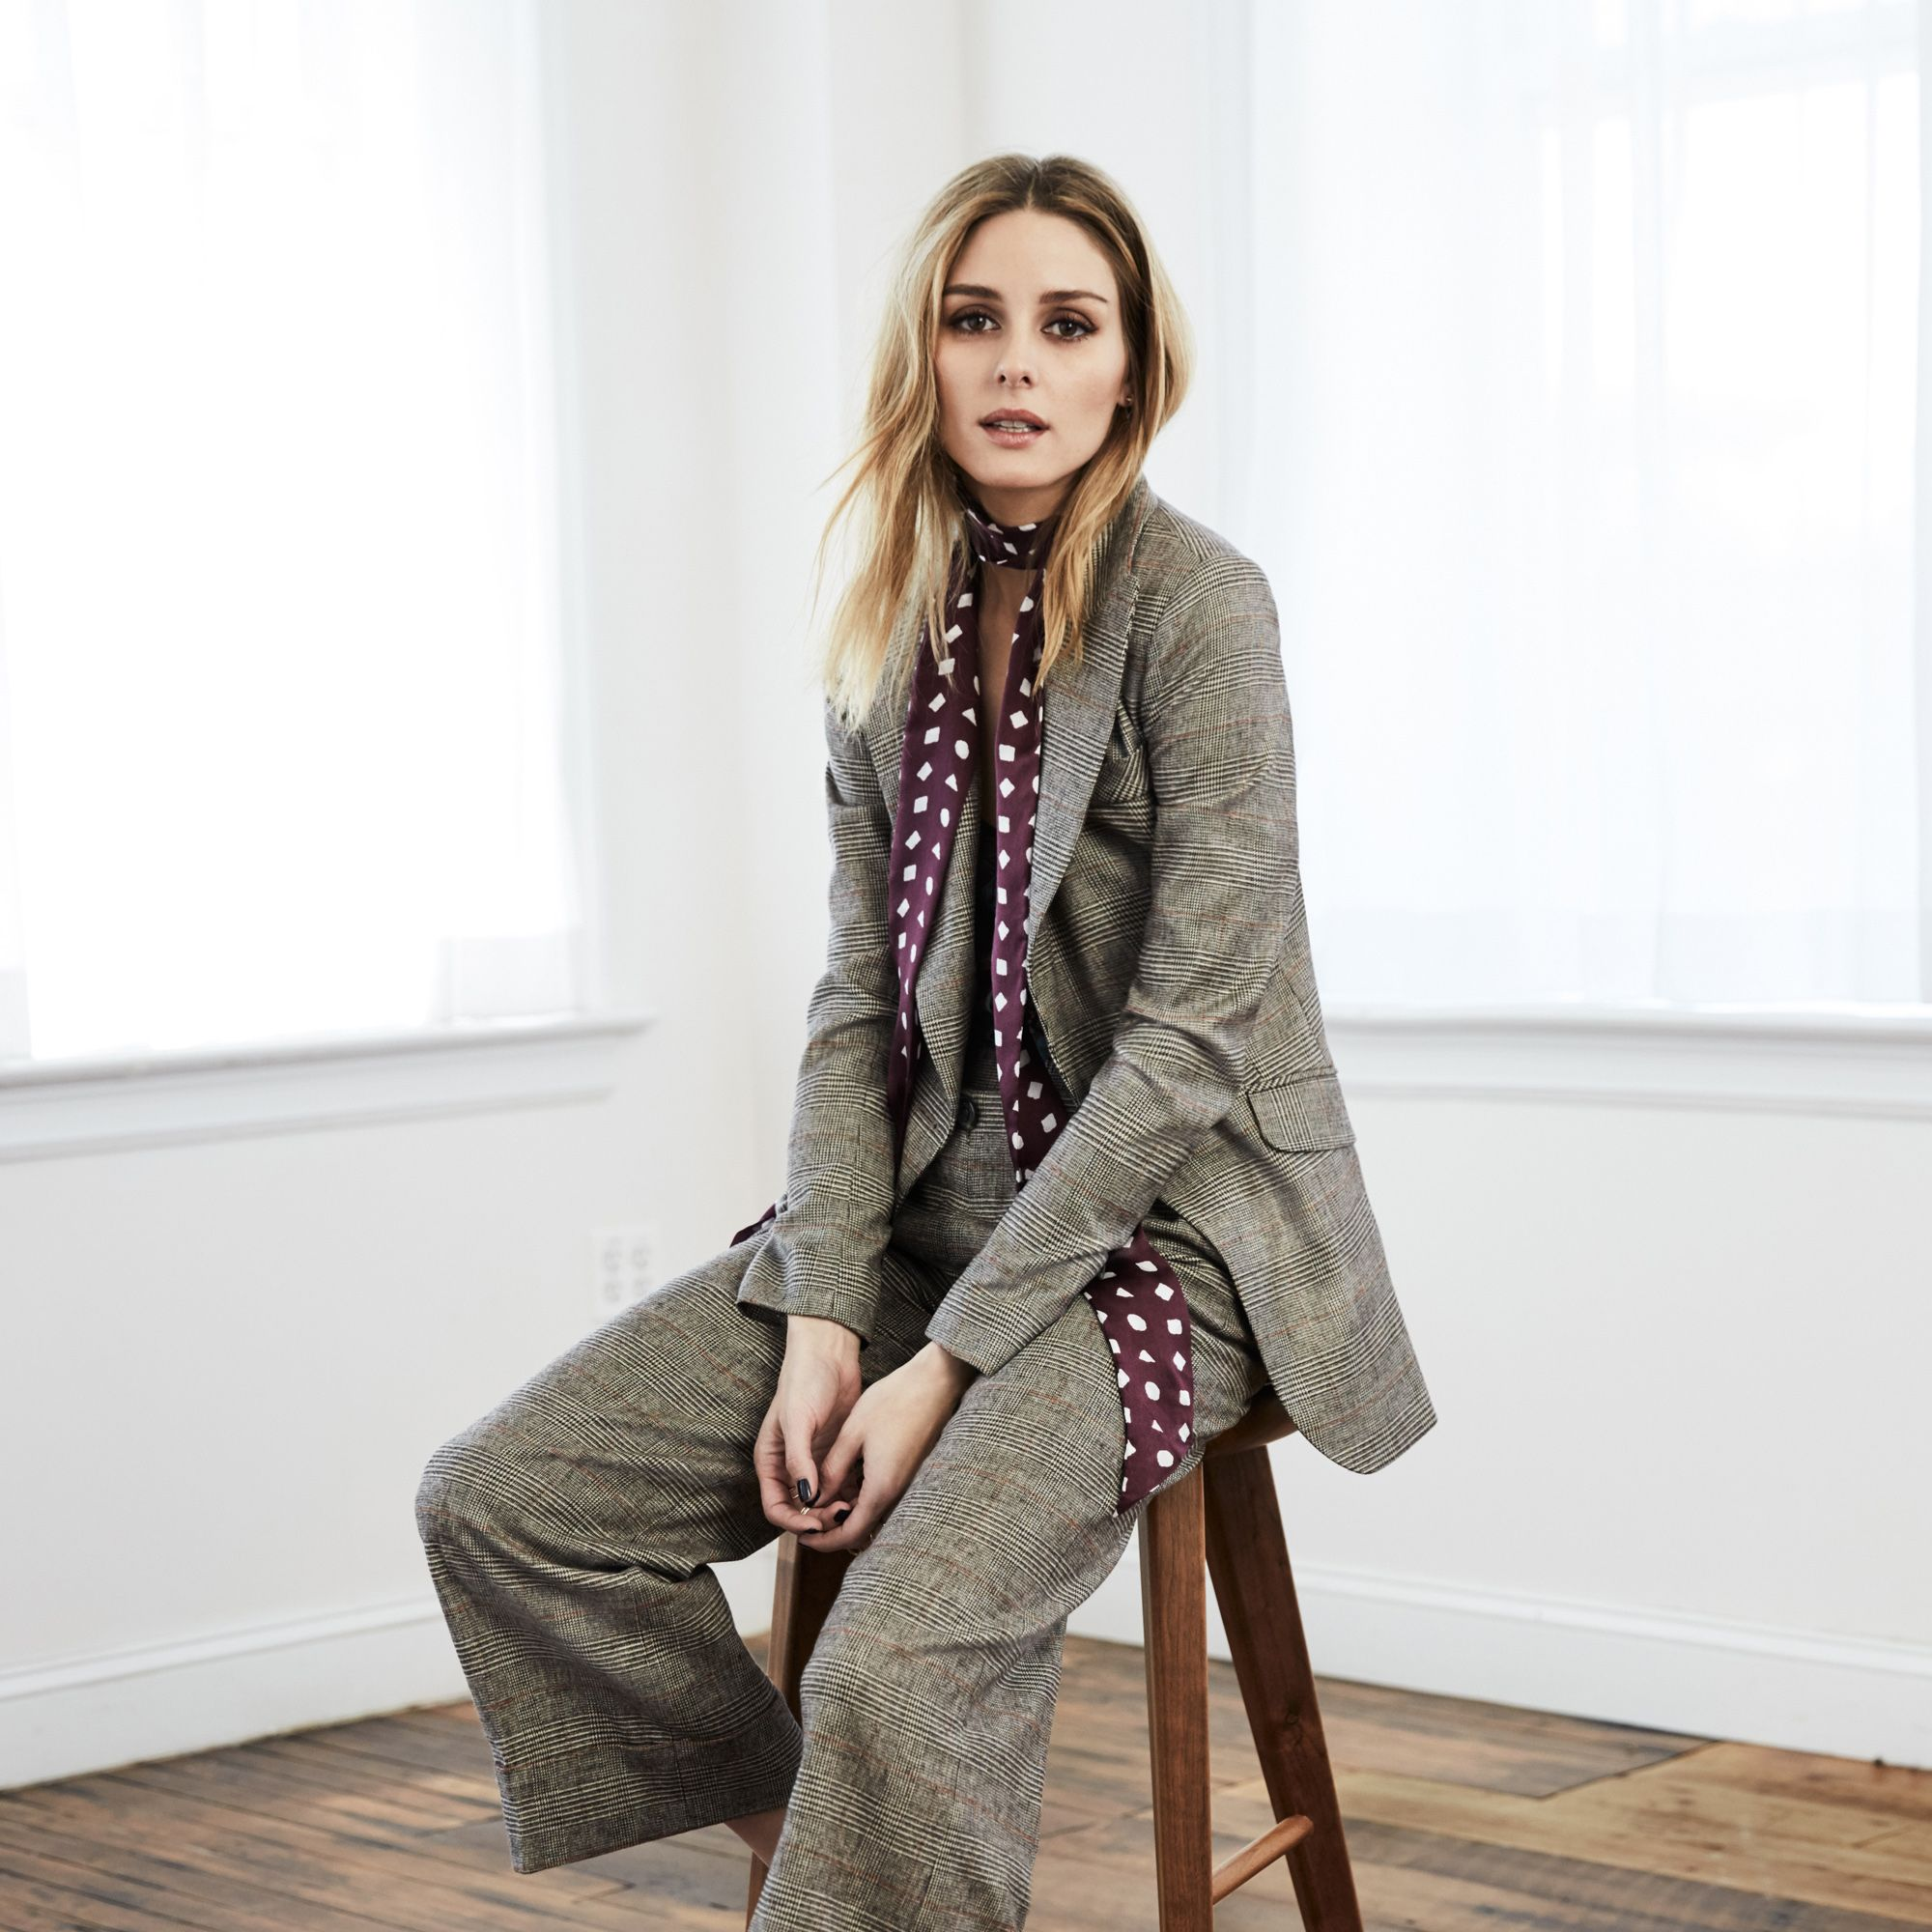 """<p><strong data-redactor-tag=""""strong"""" data-verified=""""redactor"""">Harper's BAZAAR:&nbsp&#x3B;</strong><strong data-redactor-tag=""""strong"""" data-verified=""""redactor"""">What was the inspiration behind the fall collection?</strong></p><p><strong data-redactor-tag=""""strong"""" data-verified=""""redactor"""">Olivia Palermo:</strong> It was a bit of a mix. We wanted to continue to play with styles that layer or mix and match easily according to your personal taste. We definitely continued with the 70's feel of the spring collection but added fall colors and elements like tie necklines that you can play with in different ways to have a retro or modern feel.</p>"""